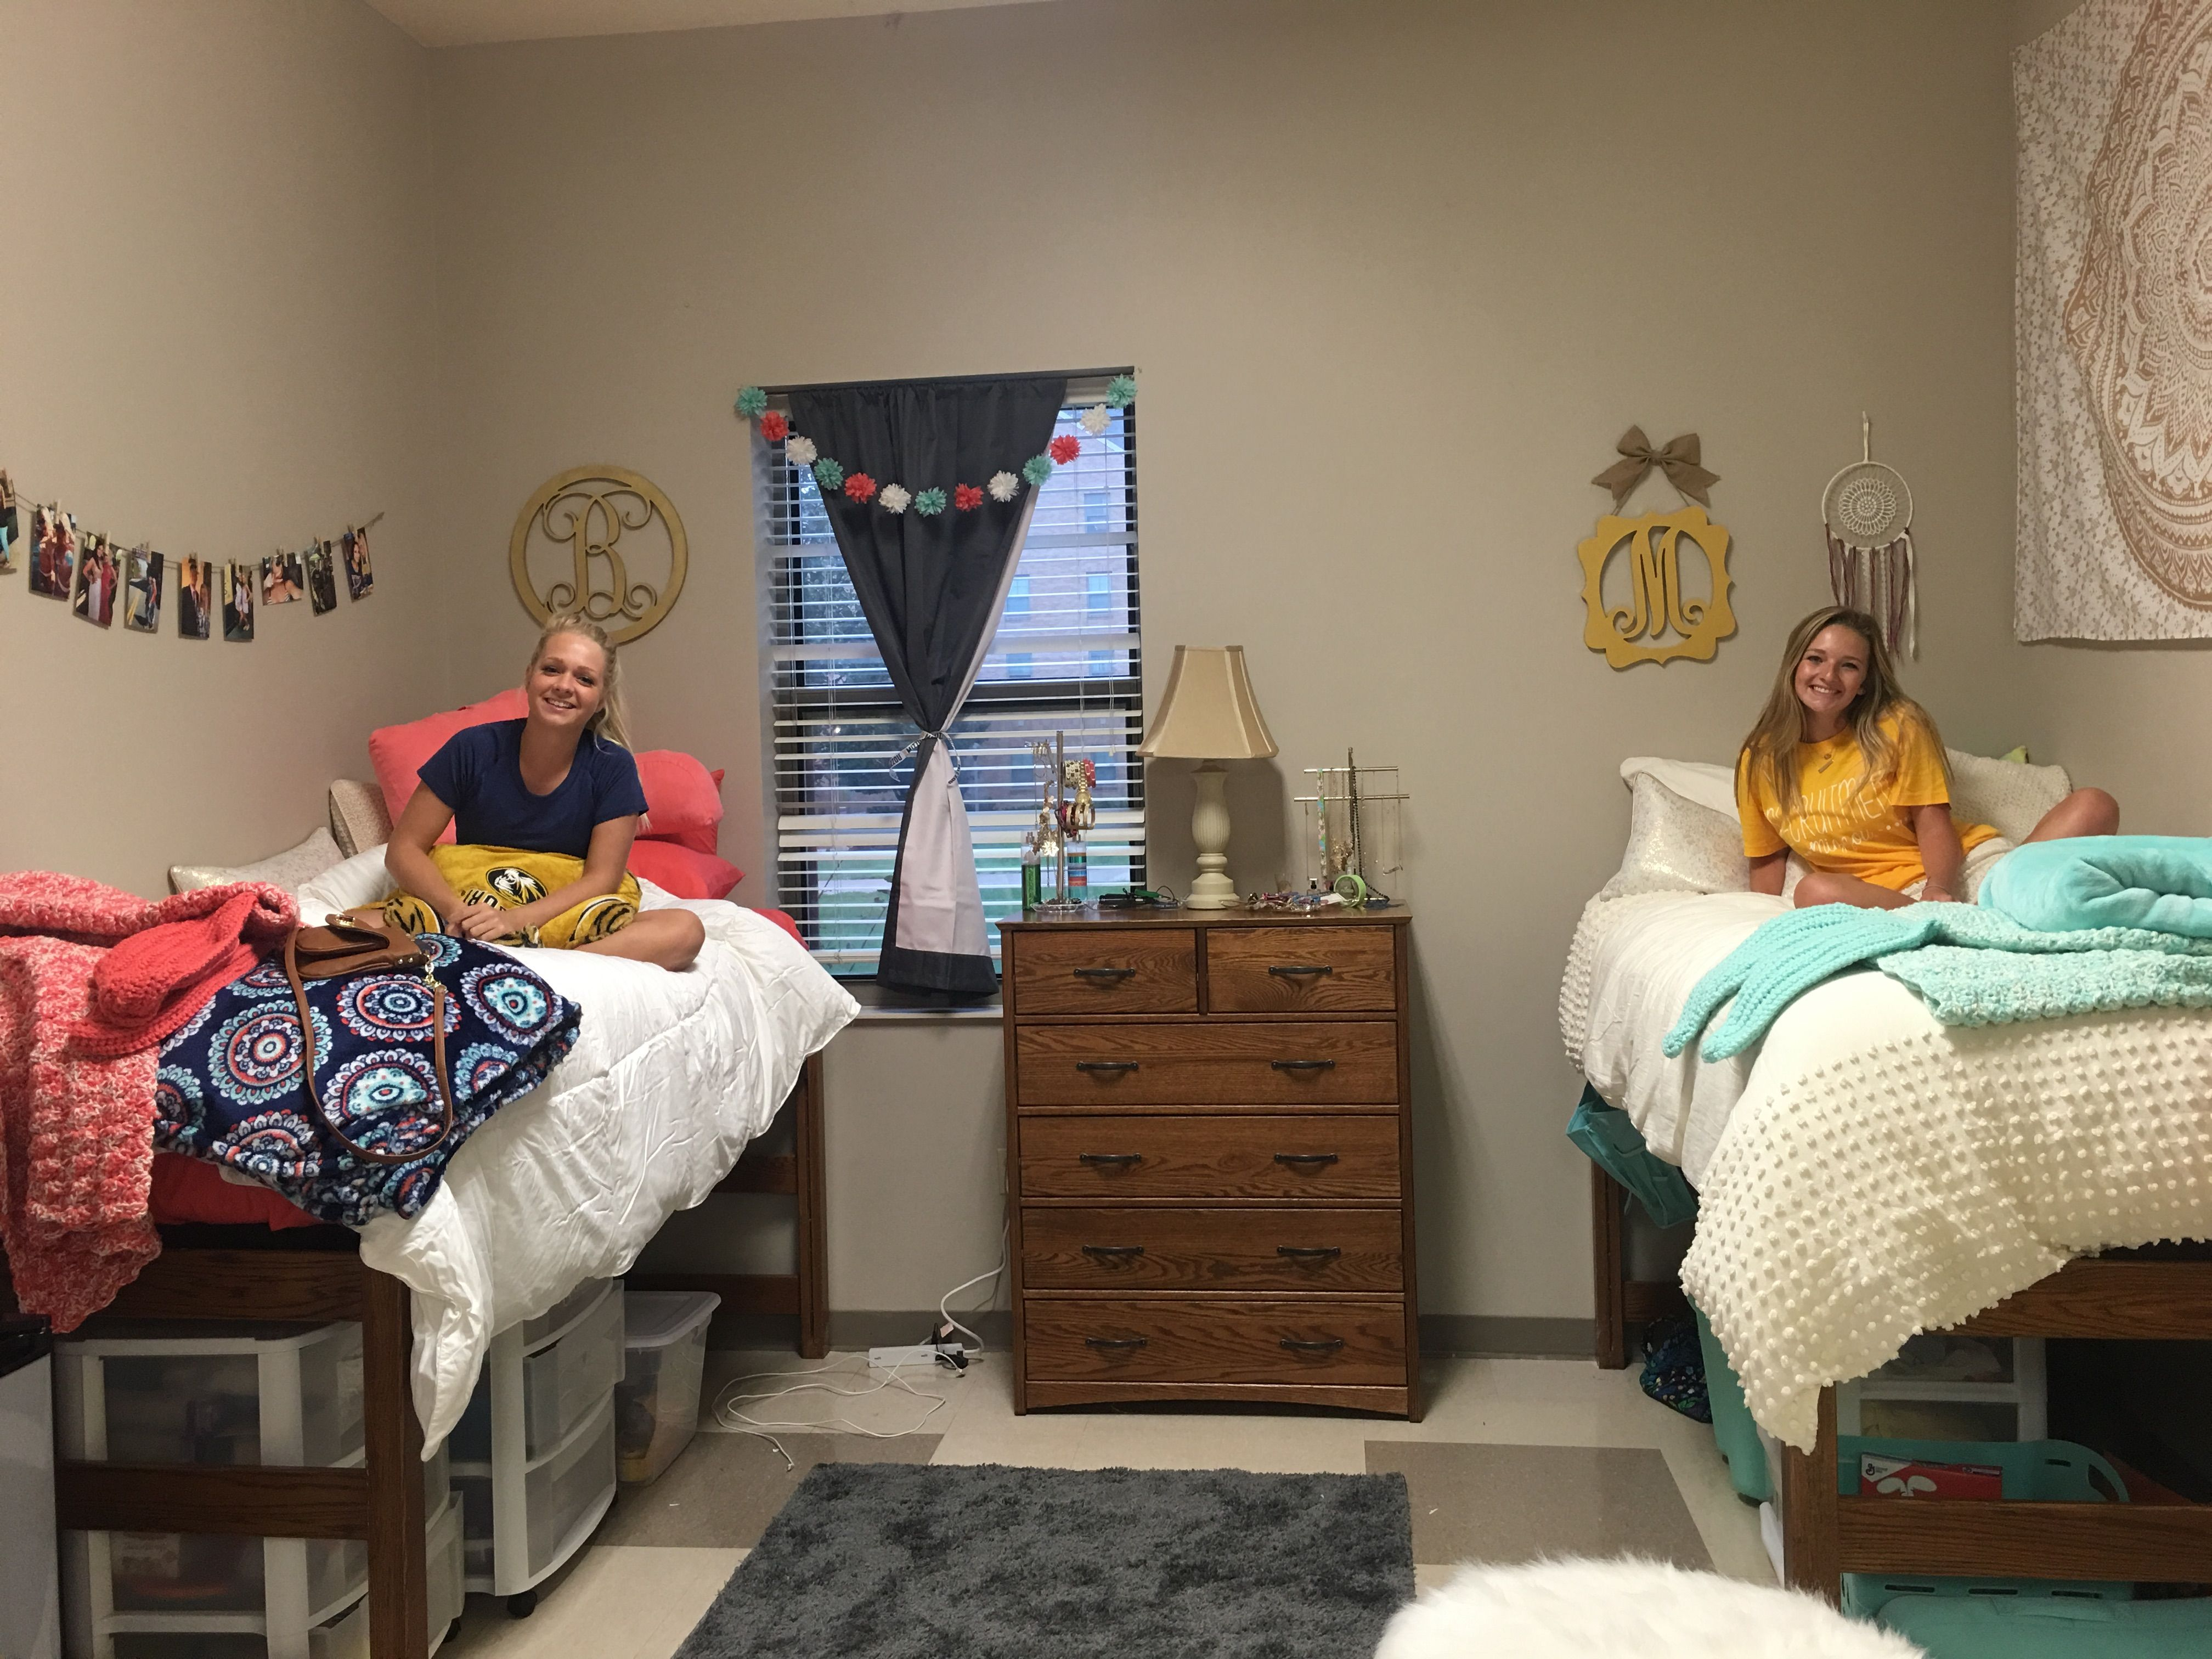 diy college decor - HD 4032×3024